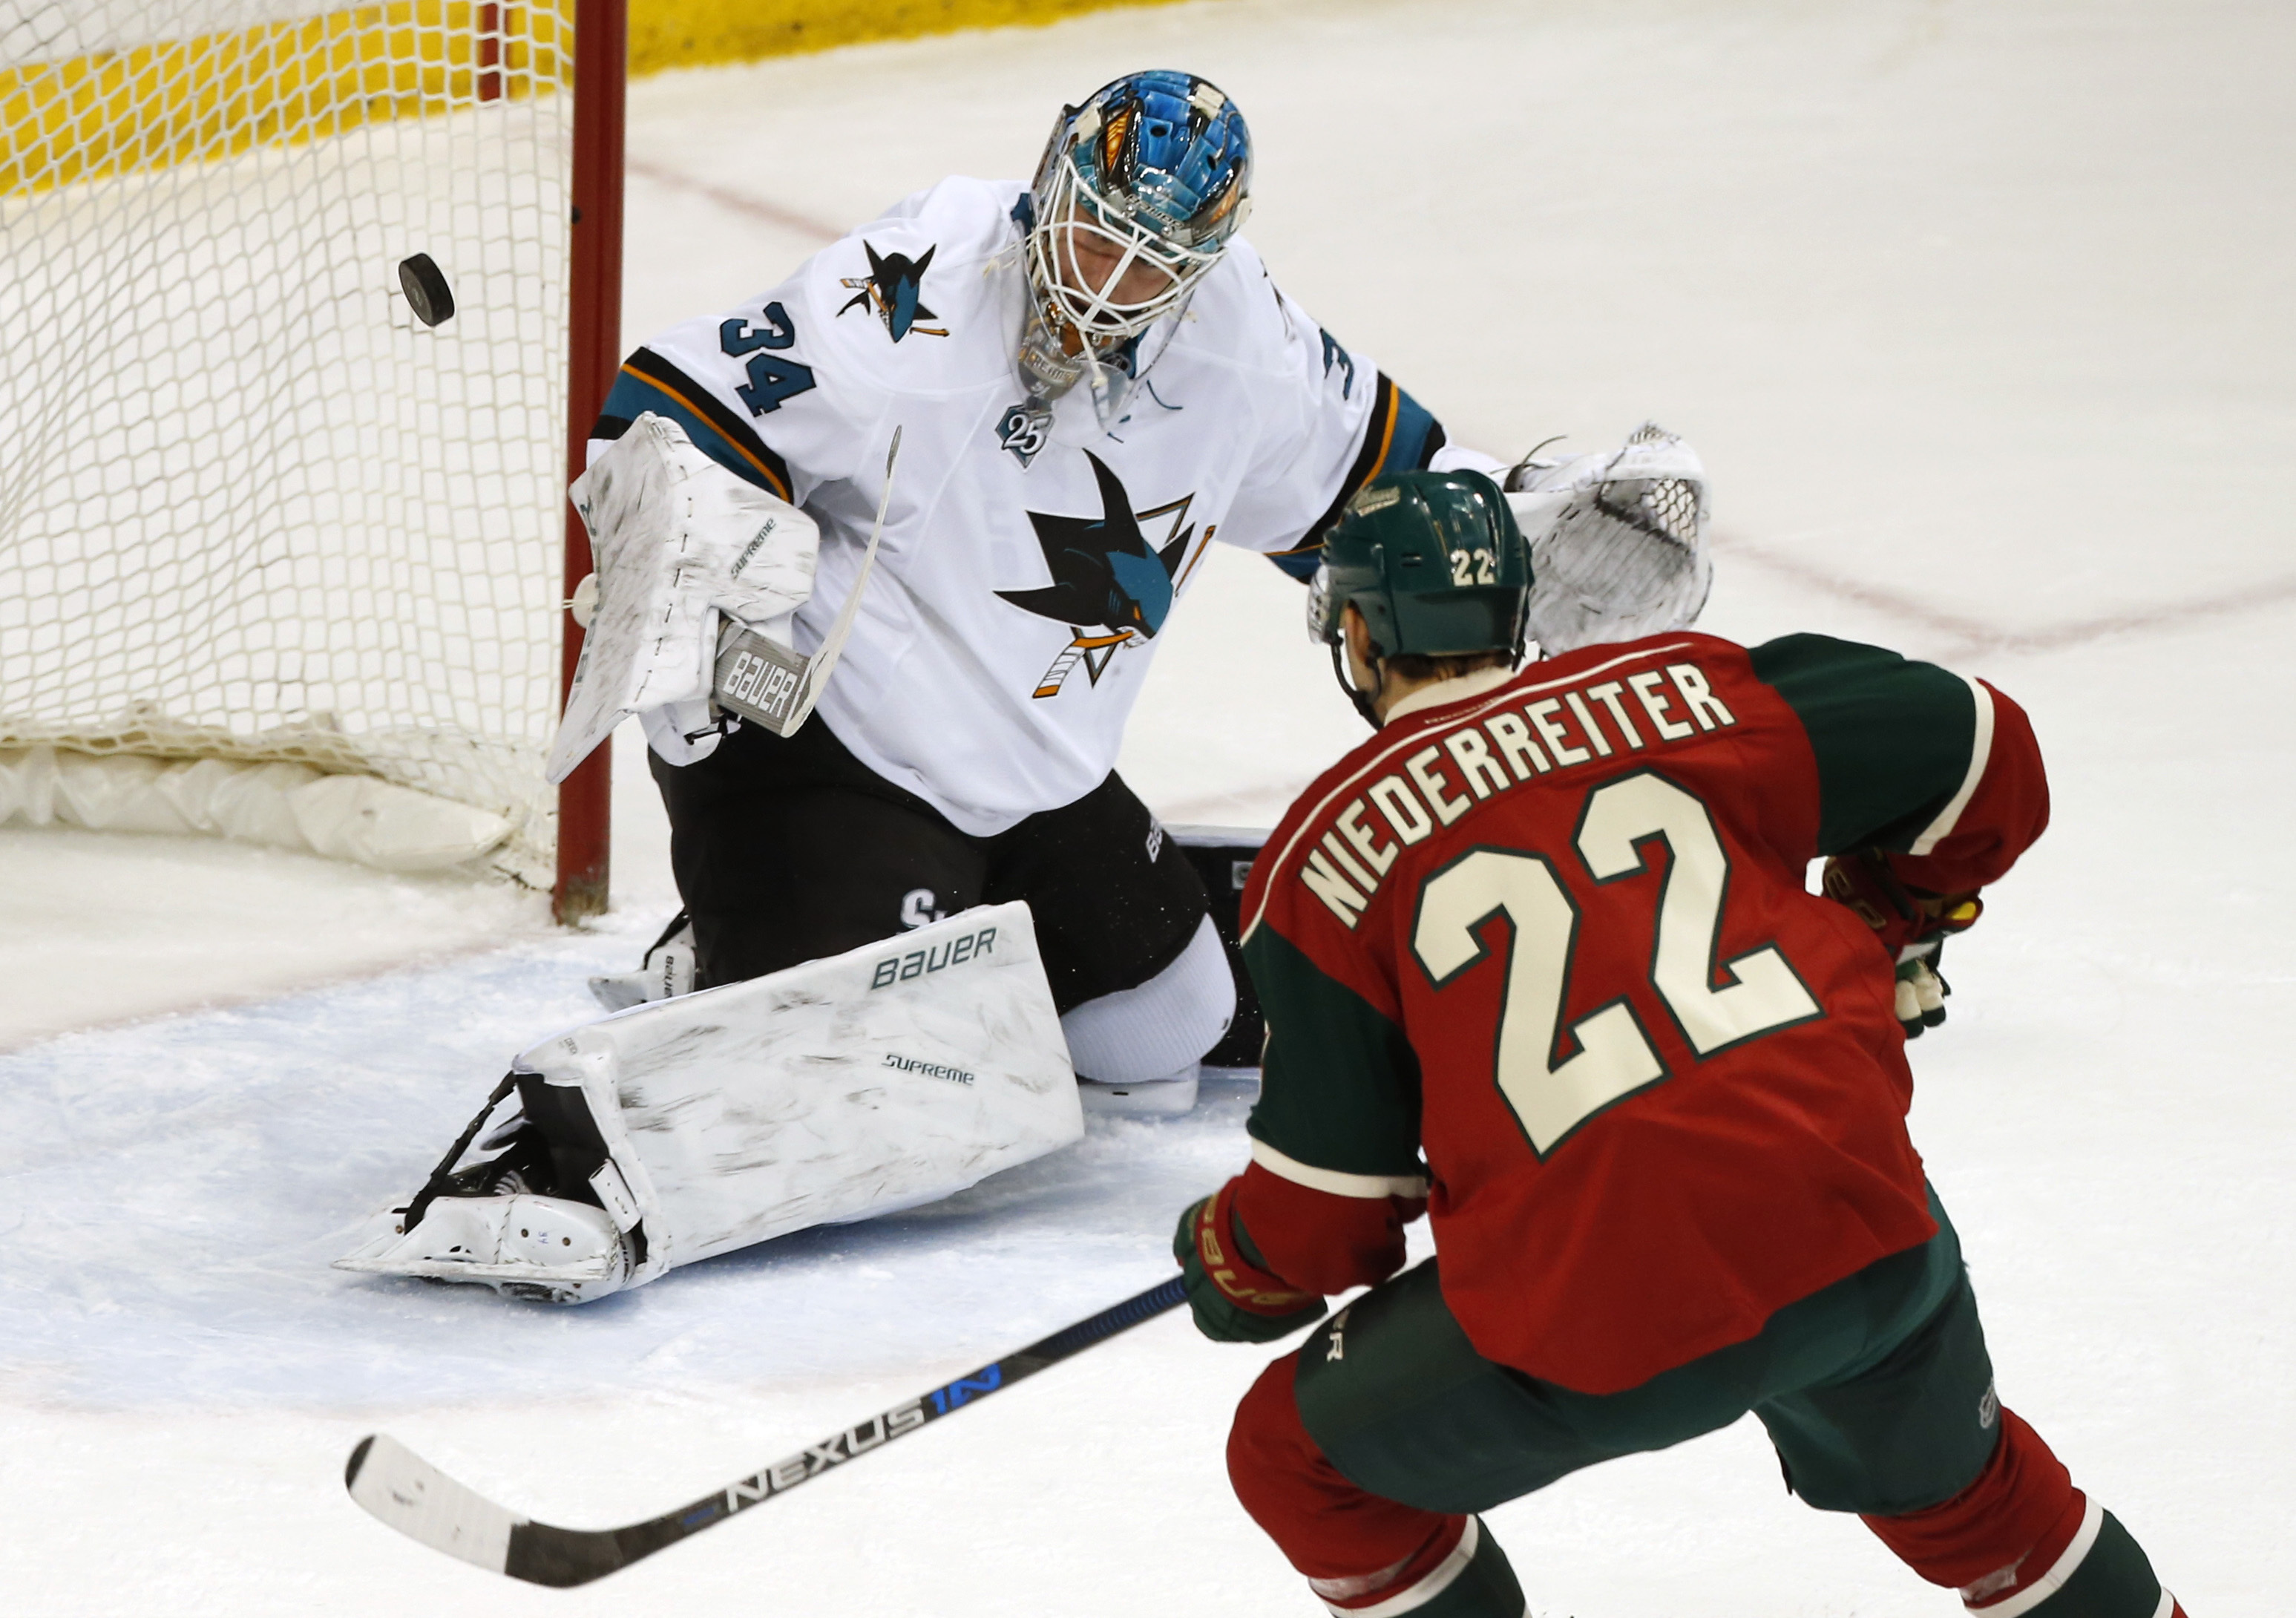 Minnesota Wild's Nino Niederreiter, right, of Switzerland, positions himself fora rebound as San Jose Sharks goalie James Reimer stops a shot in the first period of an NHL hockey game Tuesday, April 5, 2016, in St. Paul, Minn. (AP Photo/Jim Mone)